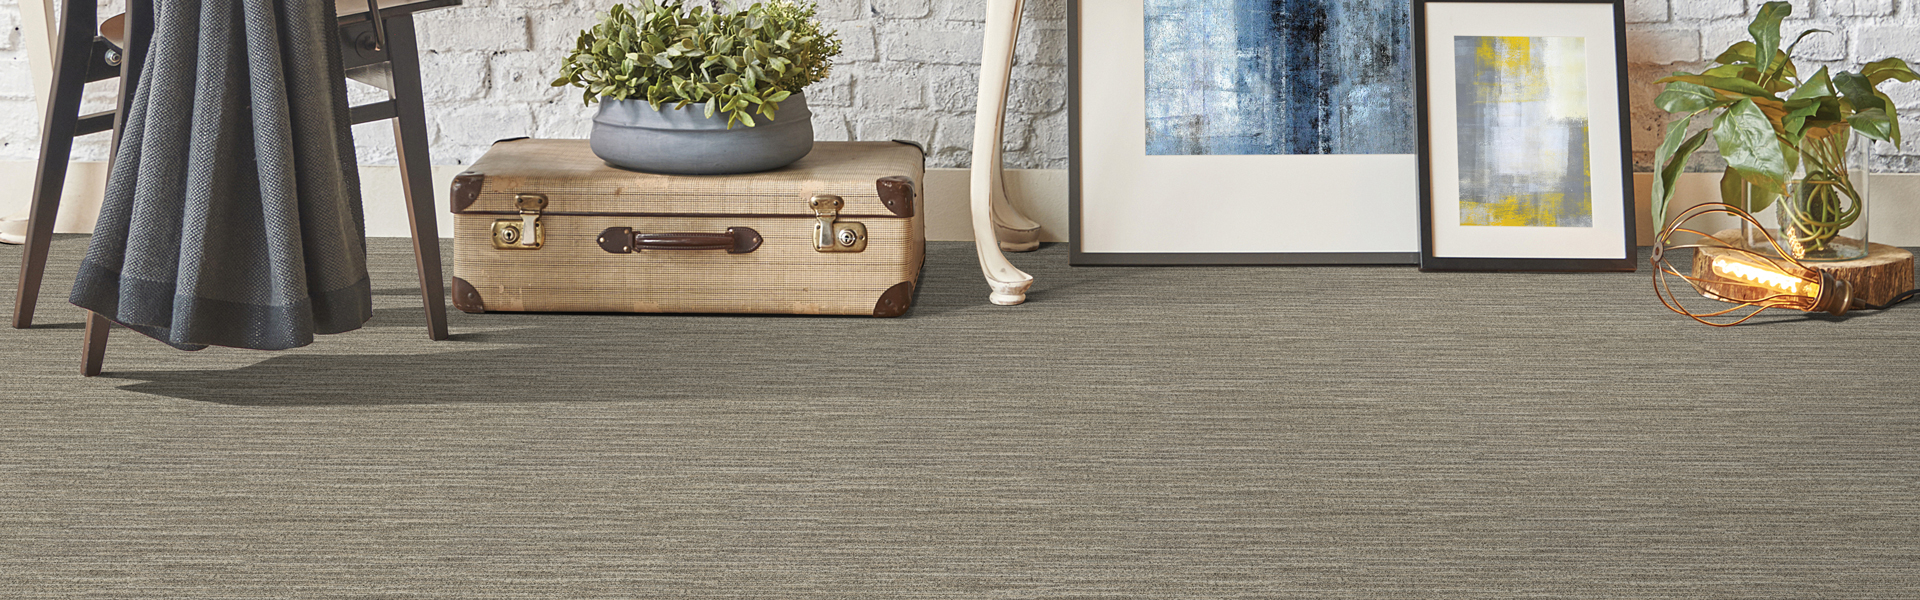 cut-loop-beaulieu-texture-carpet-vancouver-flooring-cmo-floors-bc